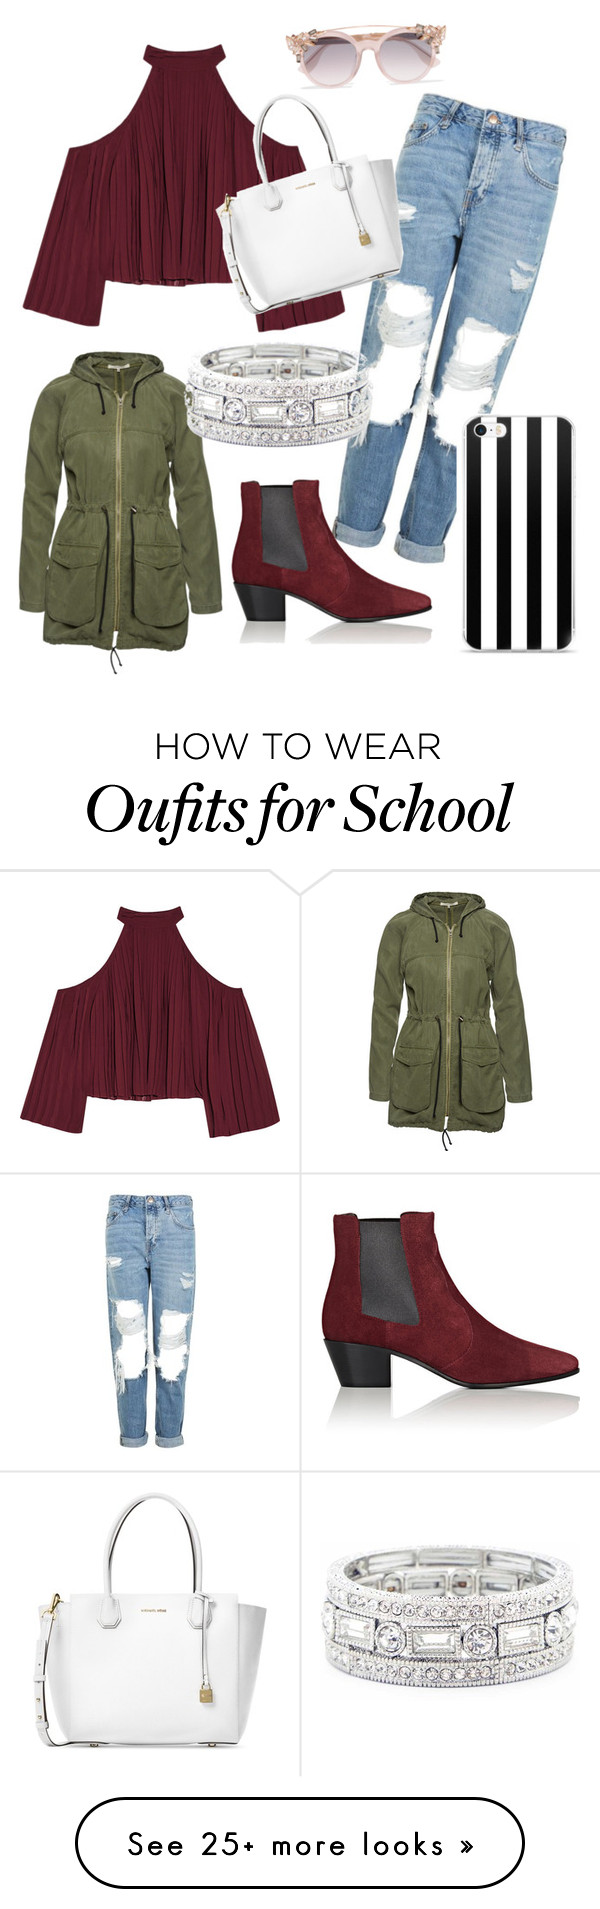 """School chic"" by sydport-1 on Polyvore featuring W118 by Walter Baker, Topshop, Yves Saint Laurent, Michael Kors, Wunderwerk, Jimmy Choo and Sole Society"